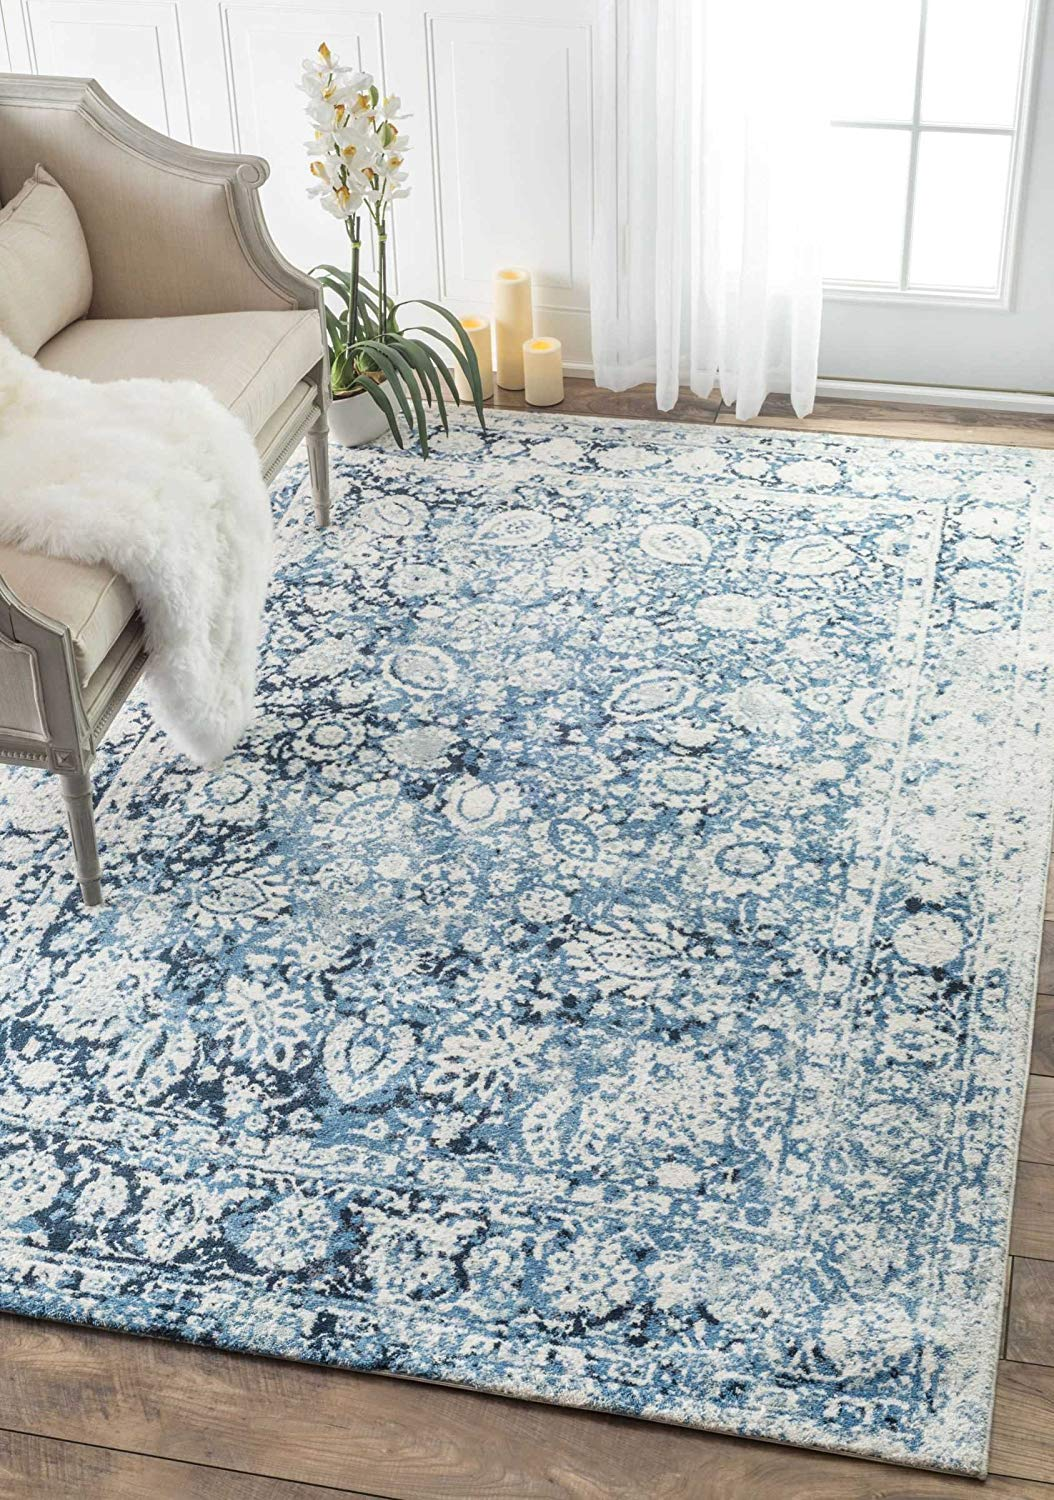 Make a plain room pop with a bright and fun rug plus 8 Other Ways To Update Your Home On A Budget. I was looking for unique and fun ways to spruce up my home, either with accents, plants, or wallpaper. these are some budget-friendly ways to make a room come to life. #homedecor #home #homeinspo